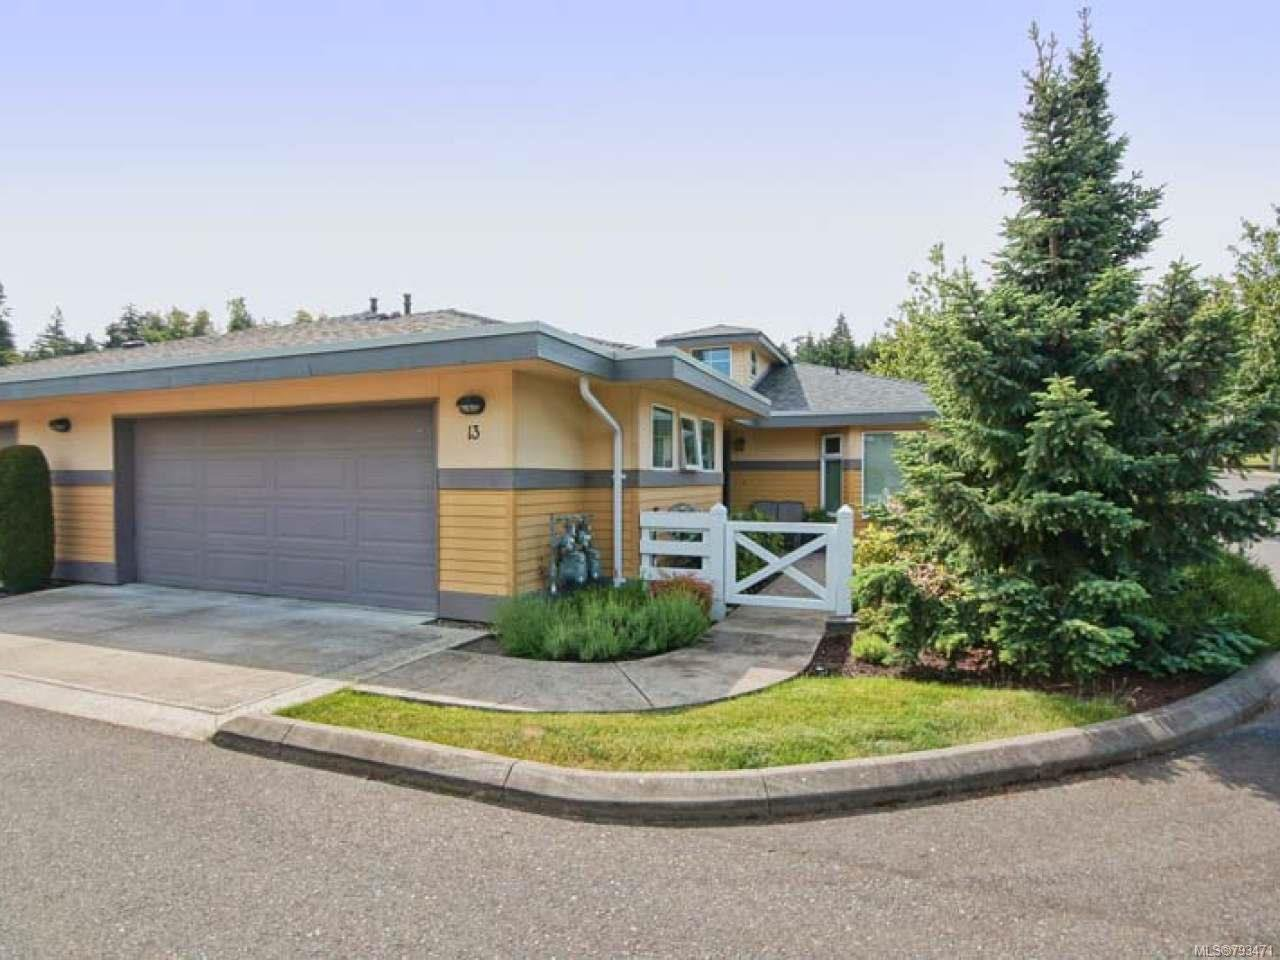 Main Photo: 13 500 CORFIELD STREET in PARKSVILLE: PQ Parksville Row/Townhouse for sale (Parksville/Qualicum)  : MLS®# 793471